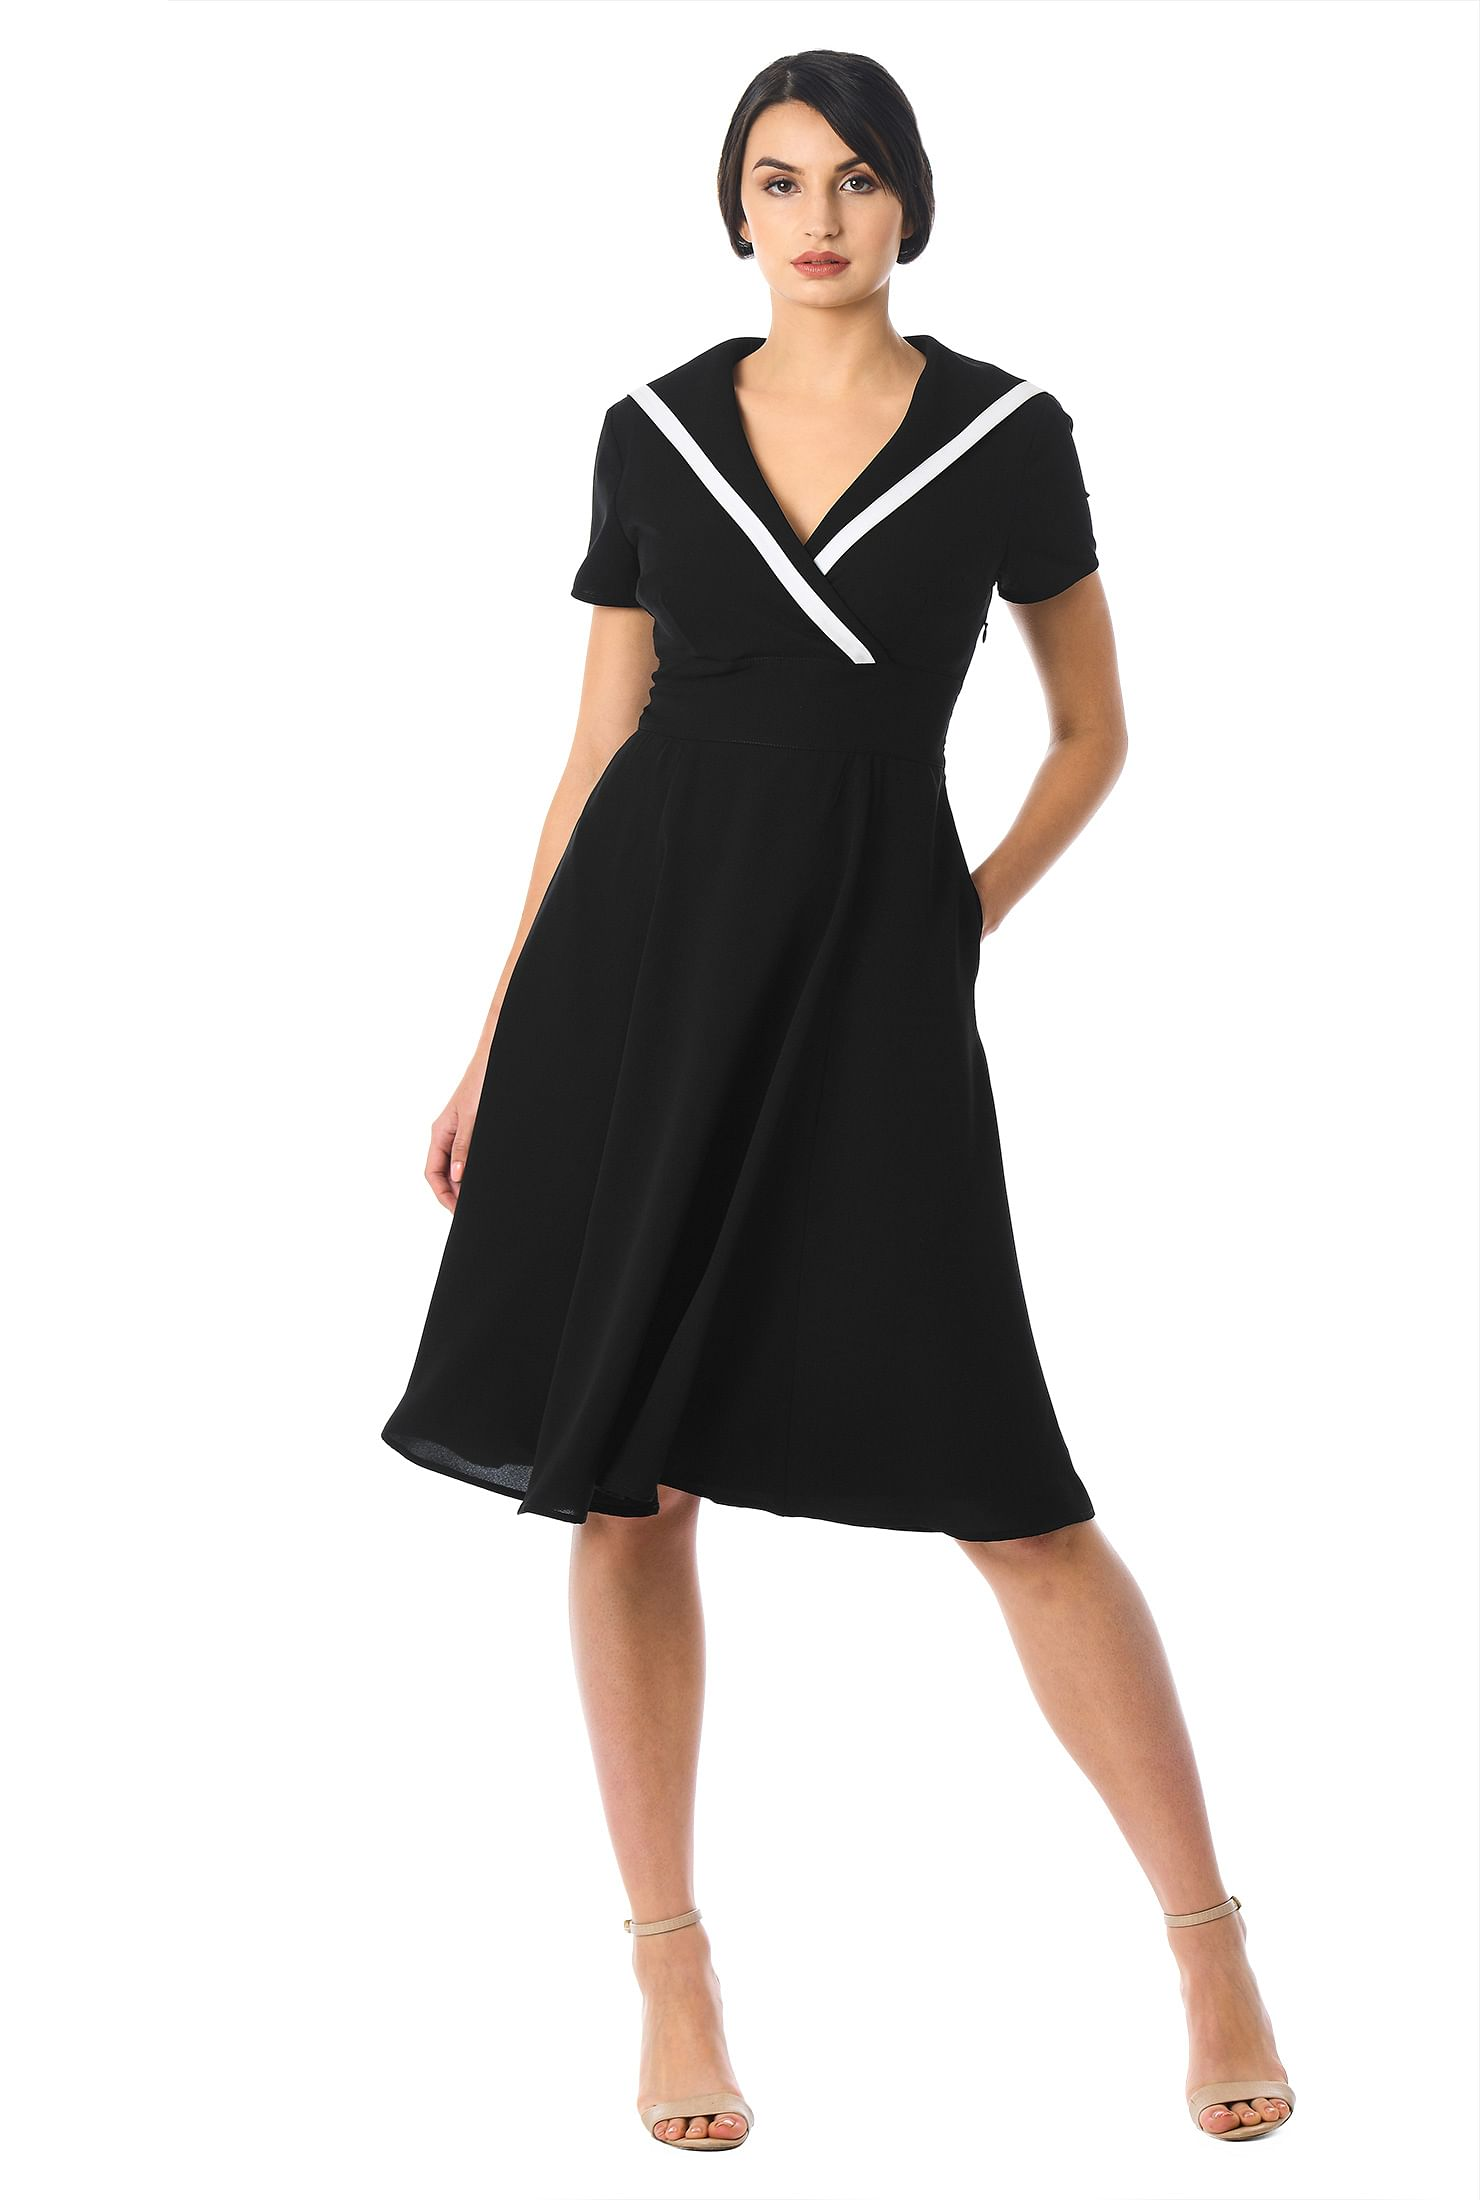 eShakti Women's Sailor collar contrast trim crepe dress